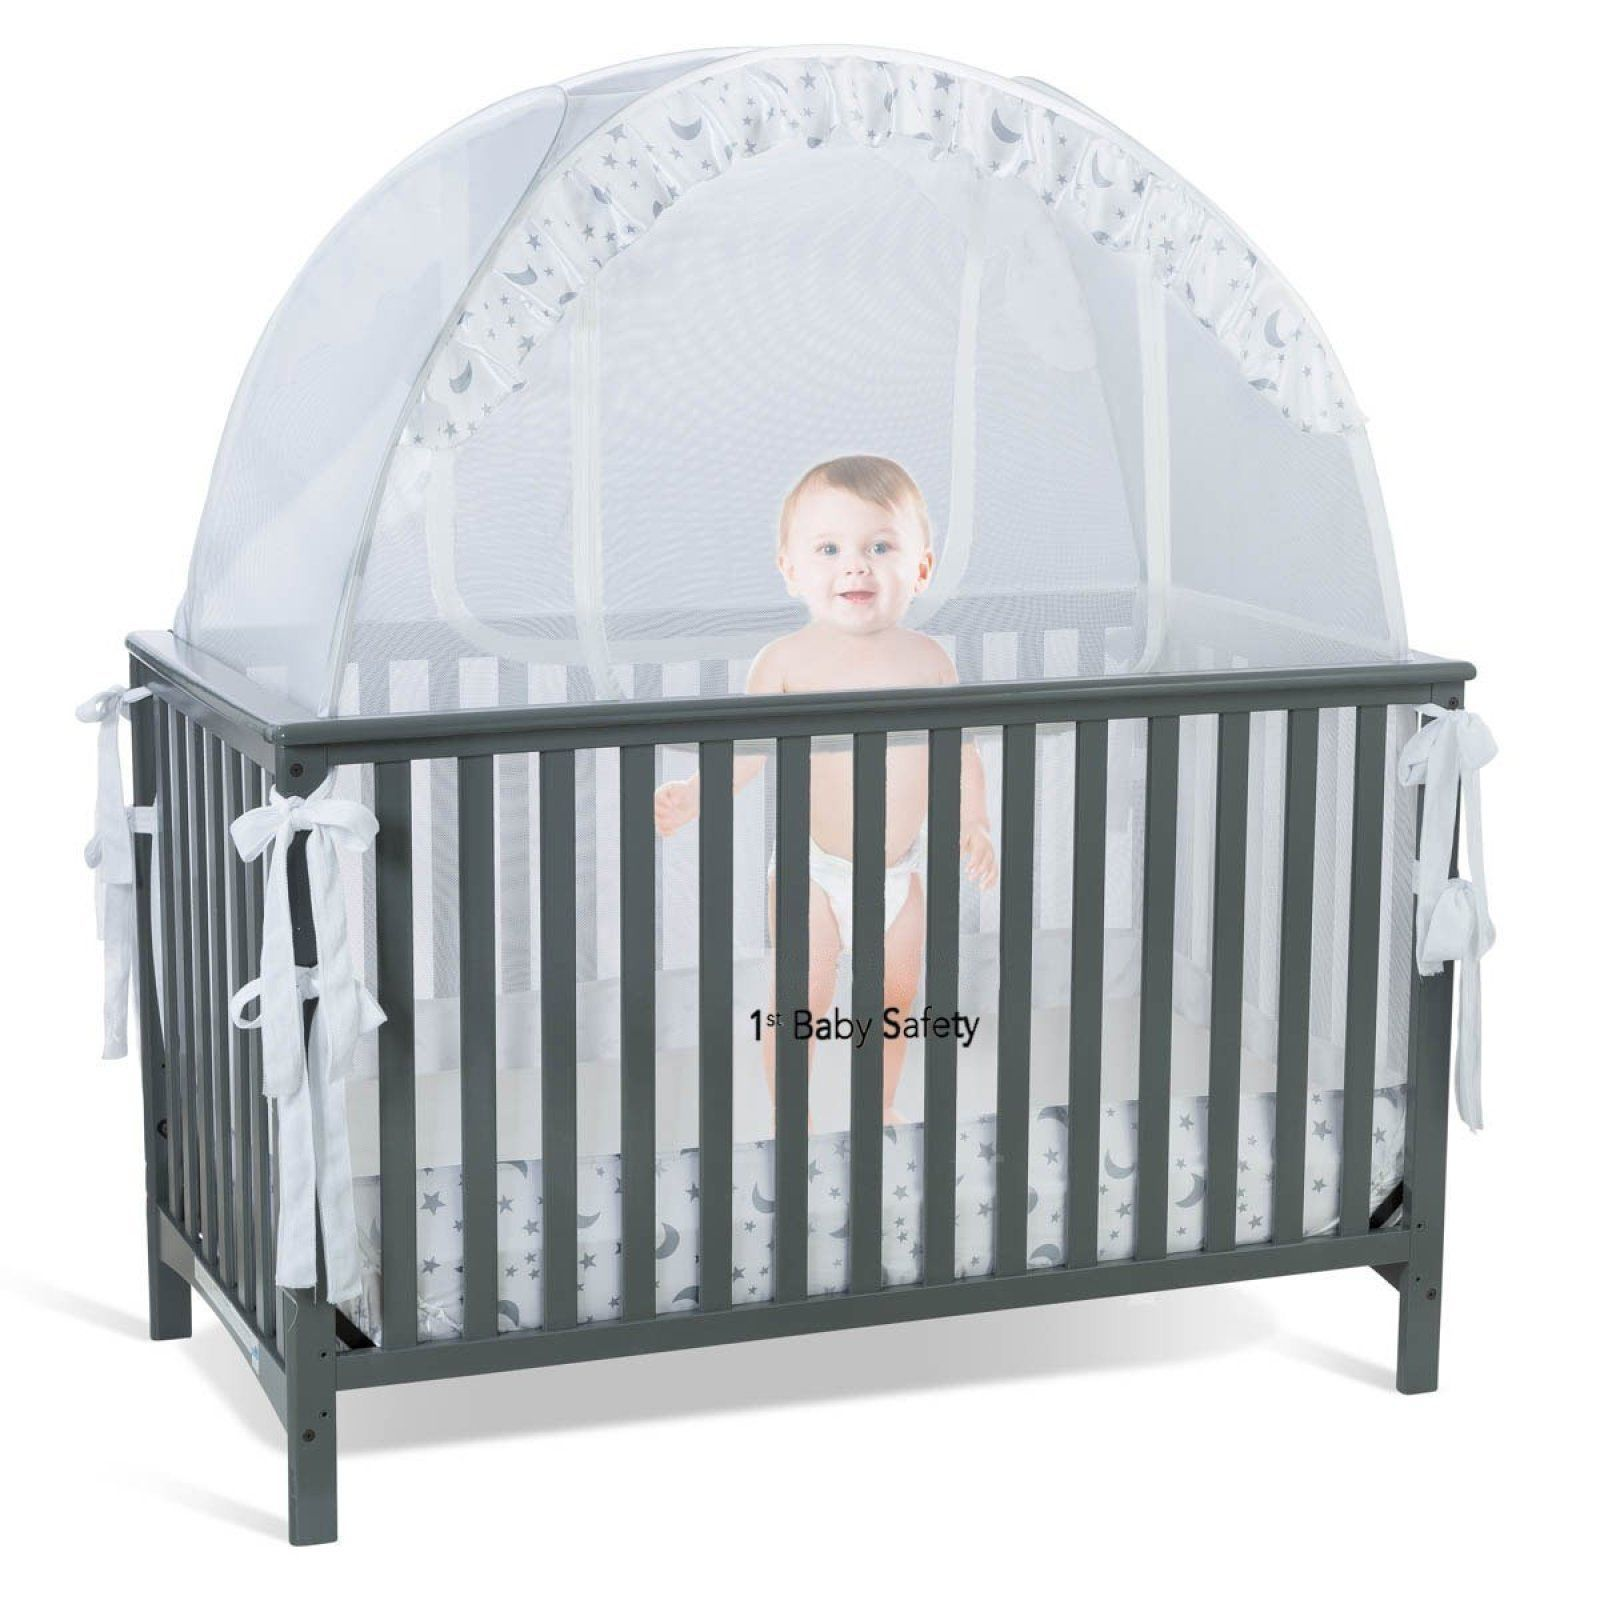 Baby Crib Tent Safety Net Canopy Cover Infant Bed Pop Up Mosquito